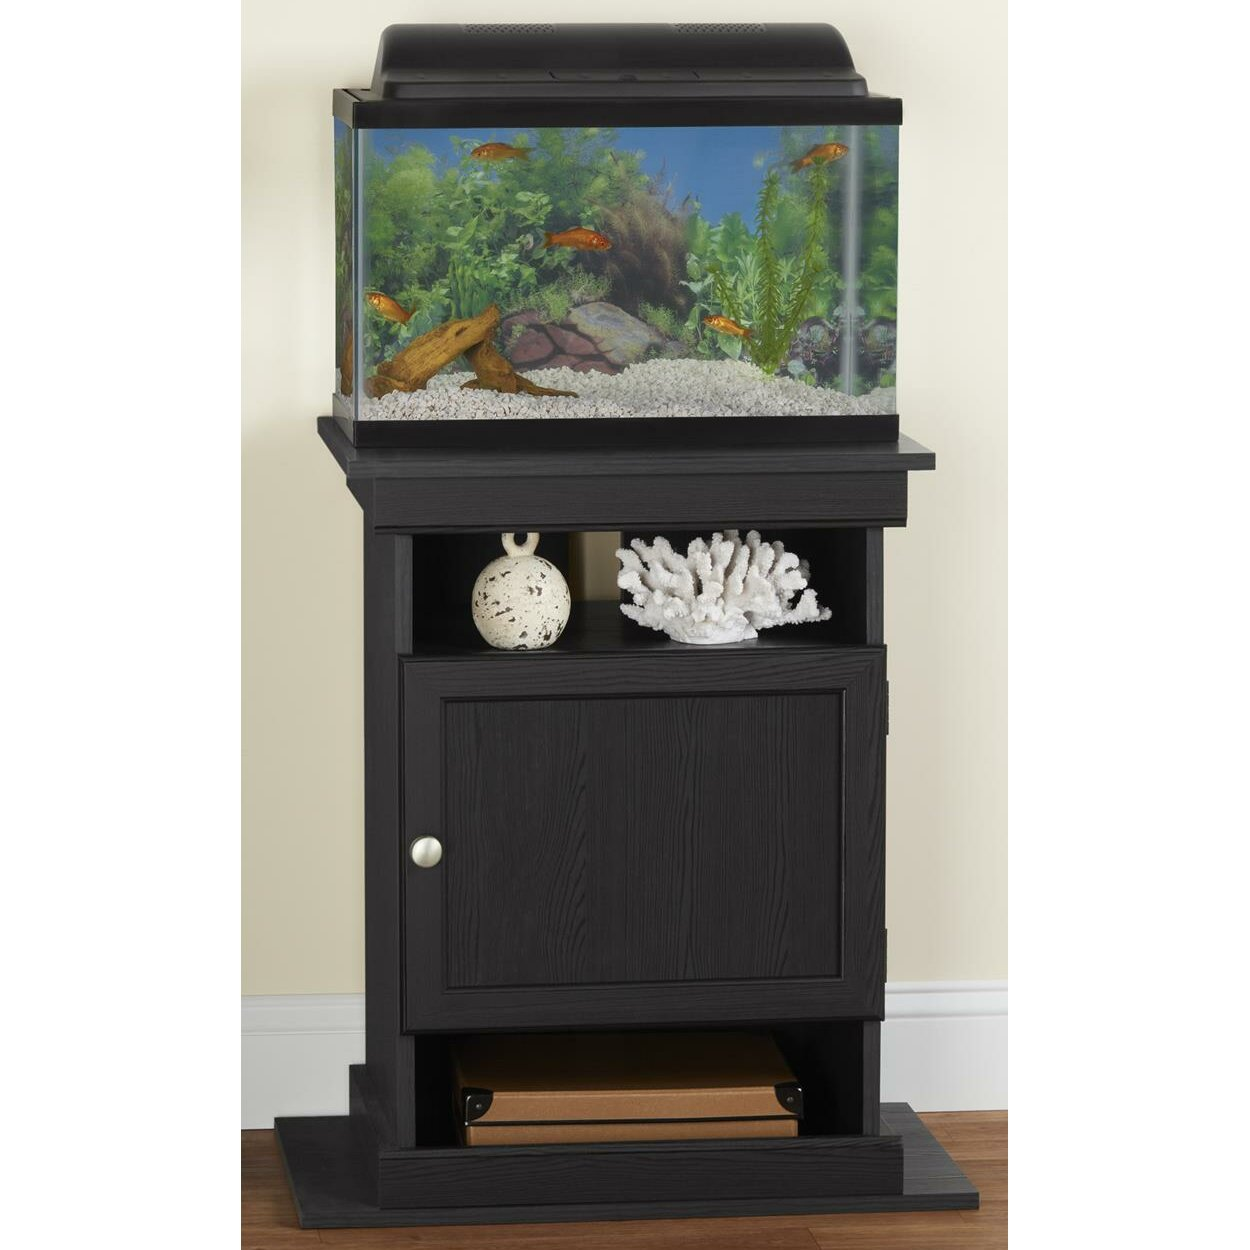 Altra Flipper 20 Gallon Aquarium Stand amp Reviews Wayfair : Altra Furniture Flipper 20 Gallon Aquarium Stand from www.wayfair.com size 1250 x 1250 jpeg 161kB